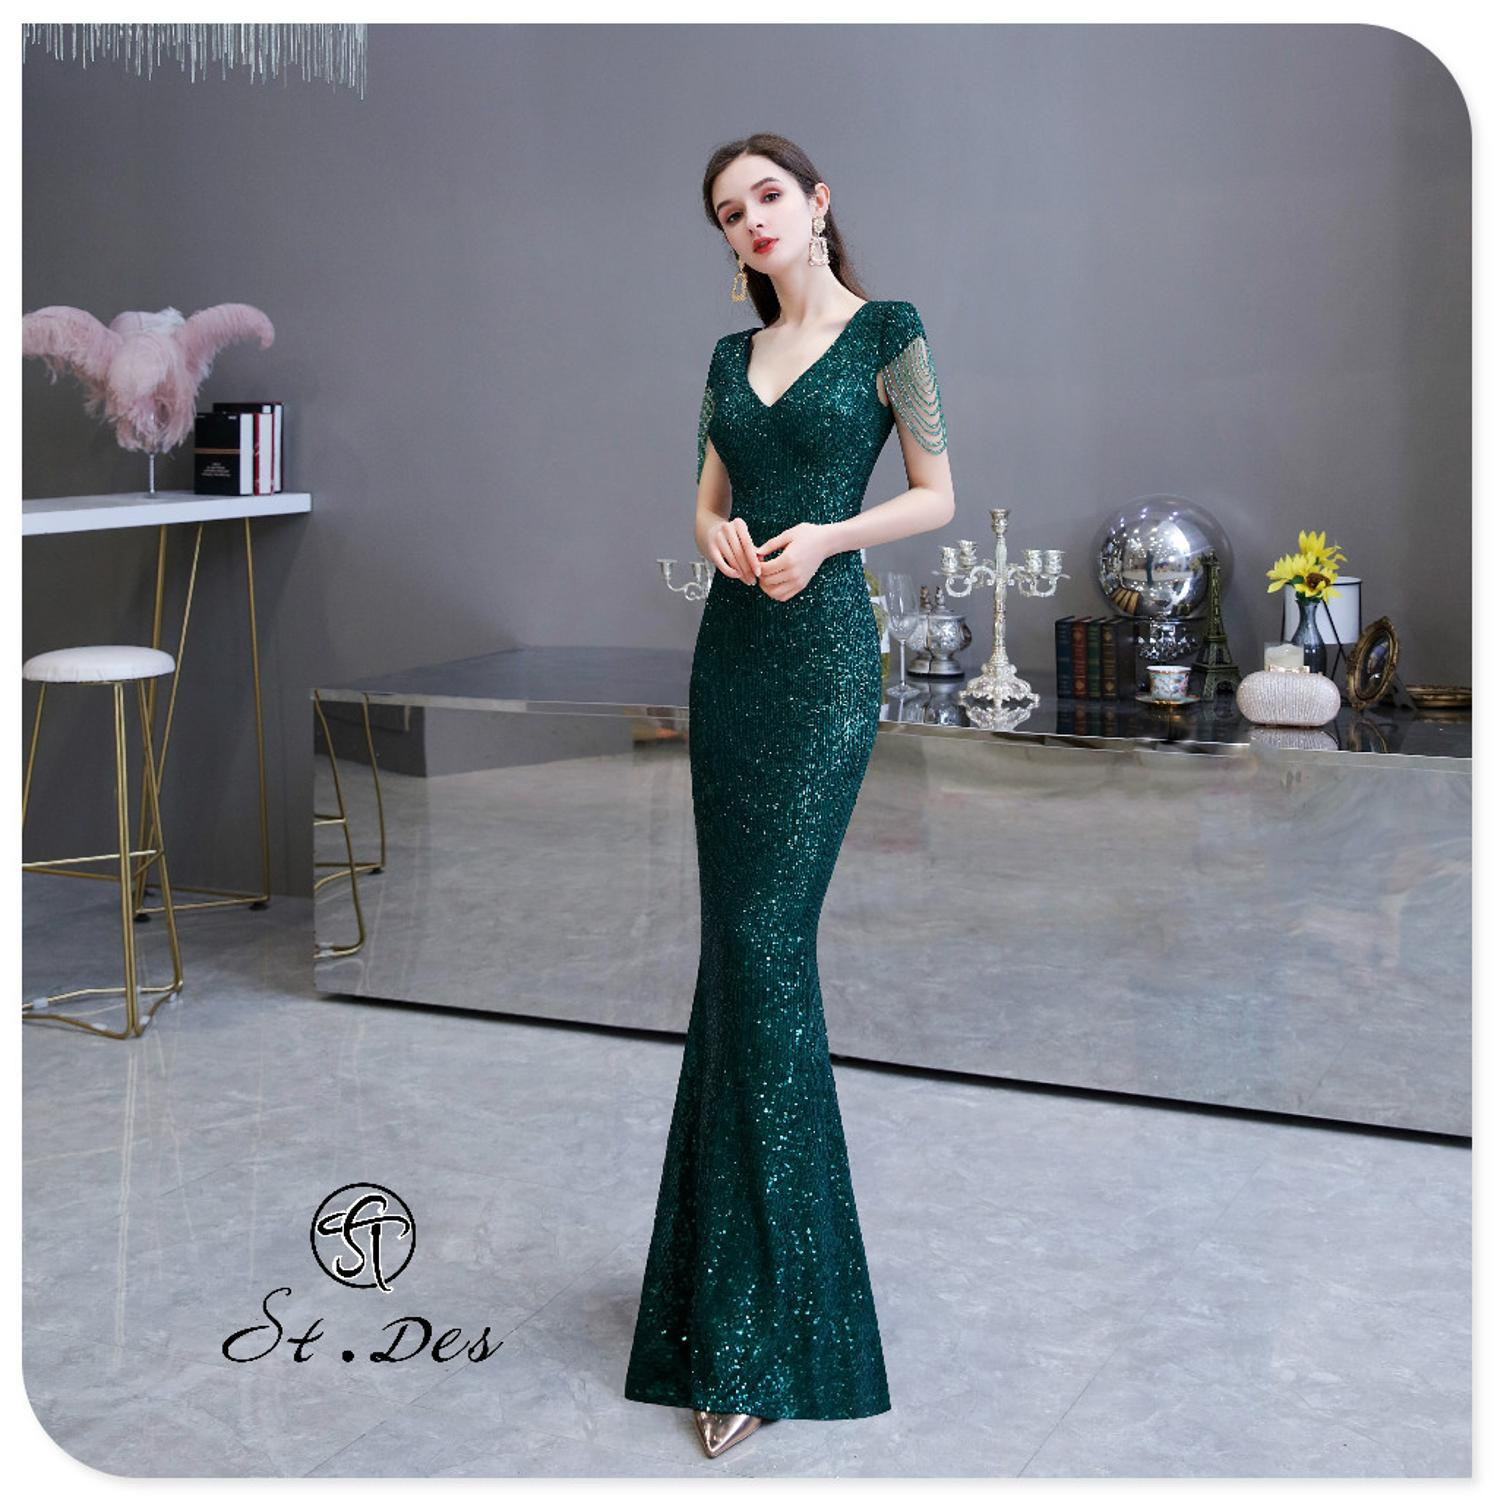 S.T.DES Evening Dress 2020 New Arrival Atrovire Beading Mermaid V-Neck Atrovire Sleeveless Floor Length Party Dress Dinner Gowns